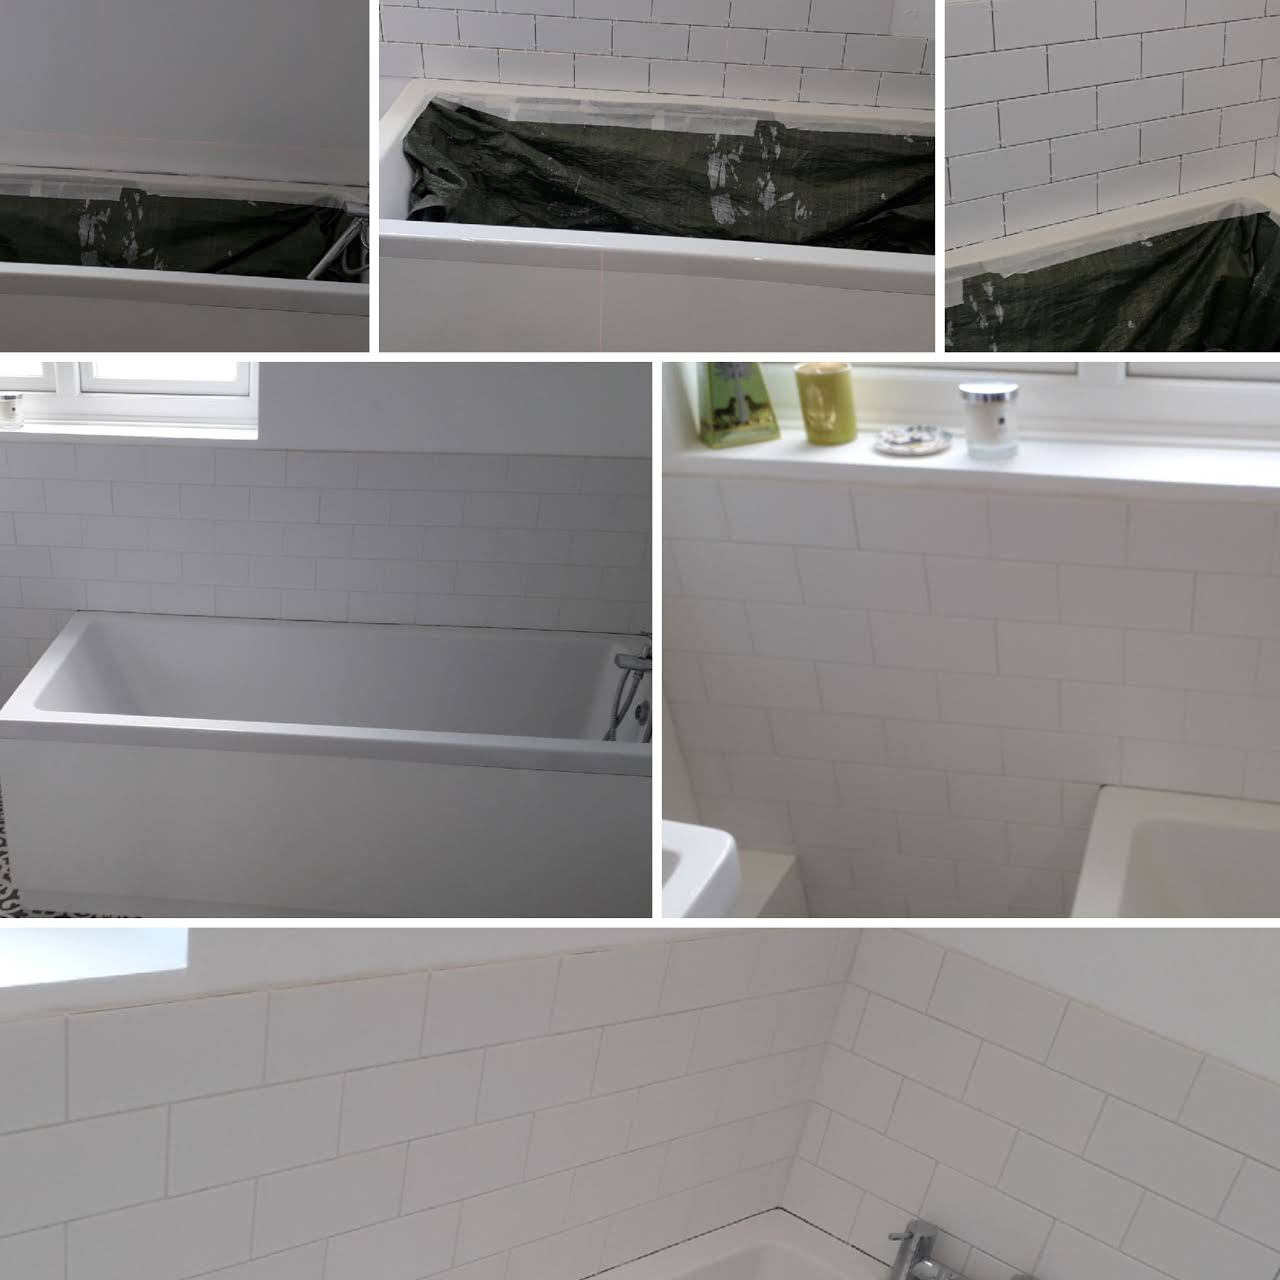 Bathroom tiled, JPH Interiors and Exteri